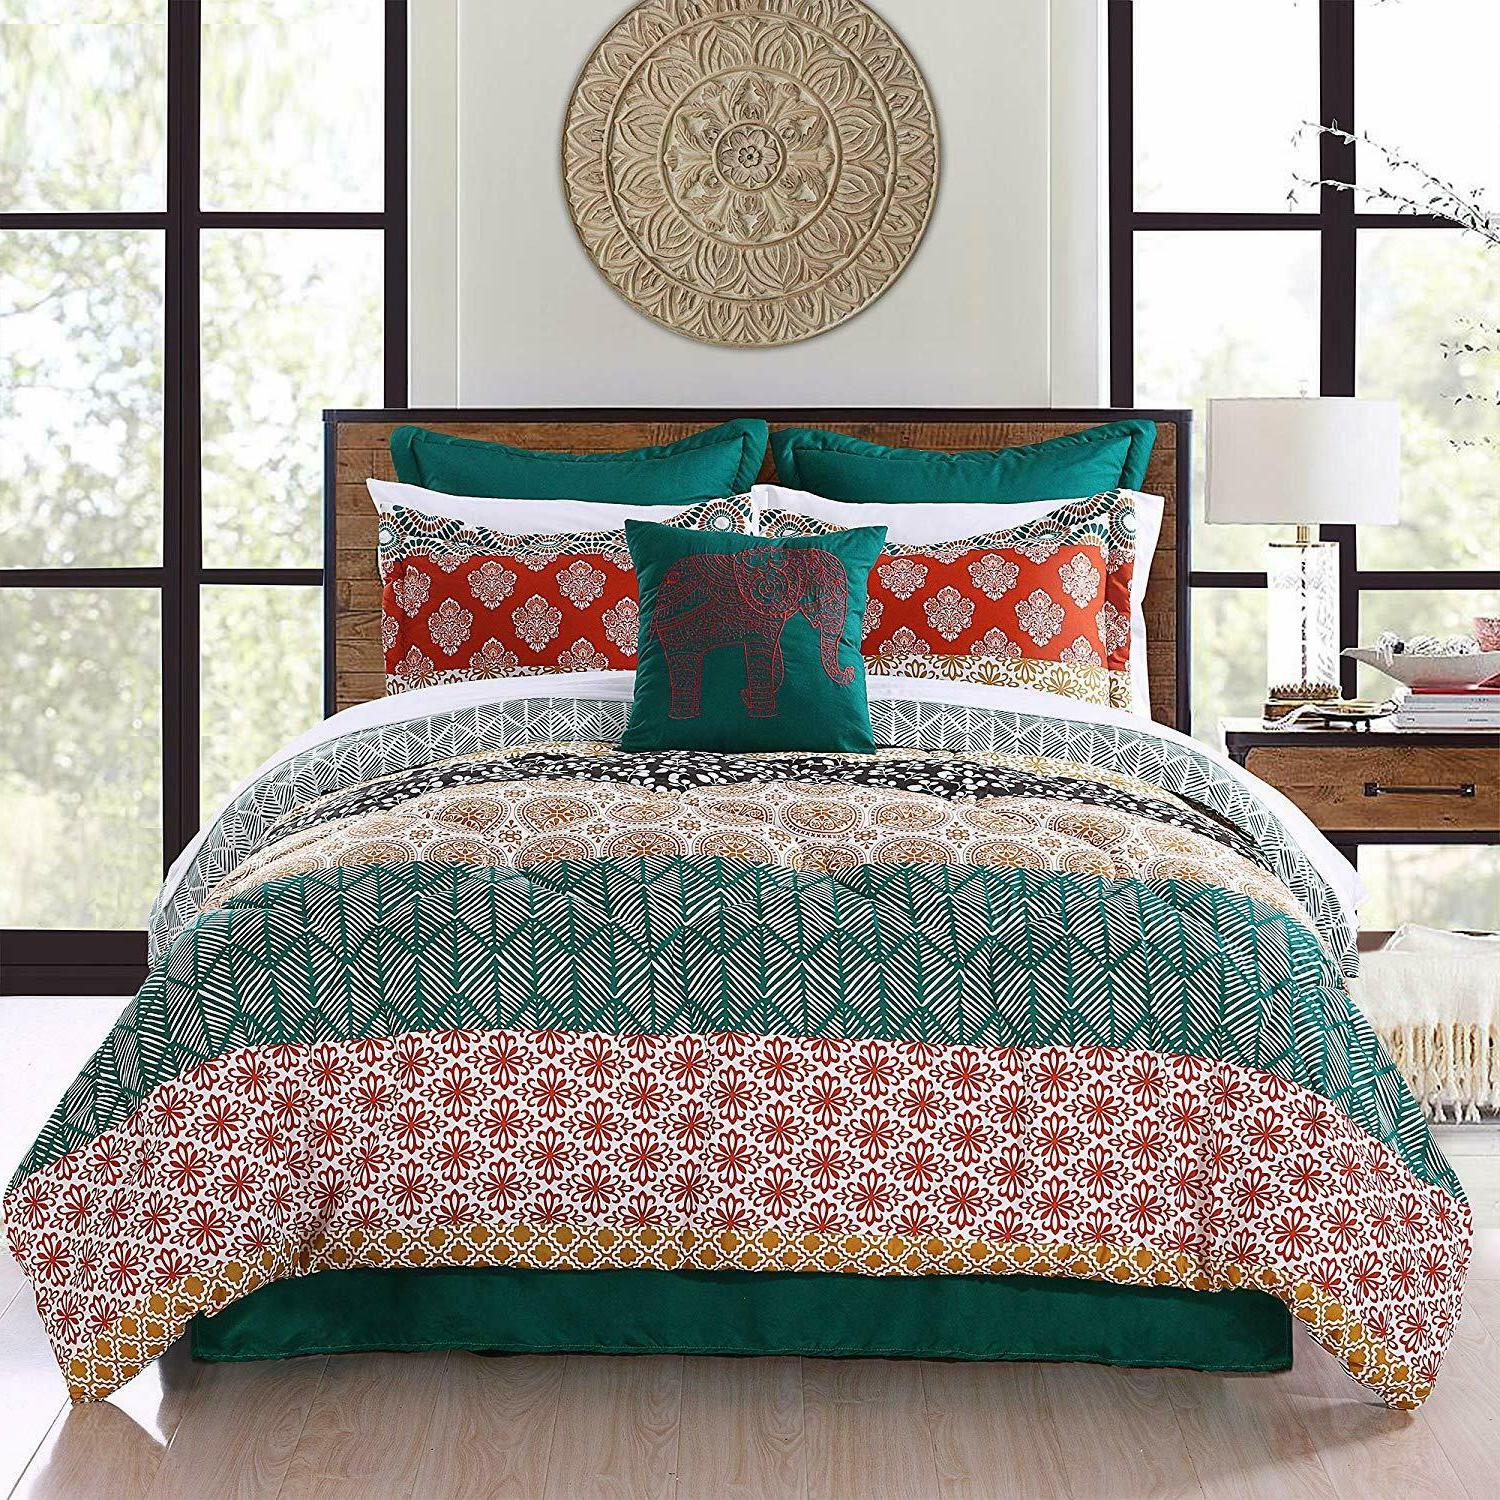 Lush Decor Bohemian Striped Quilt Reversible 3 Piece Bedding